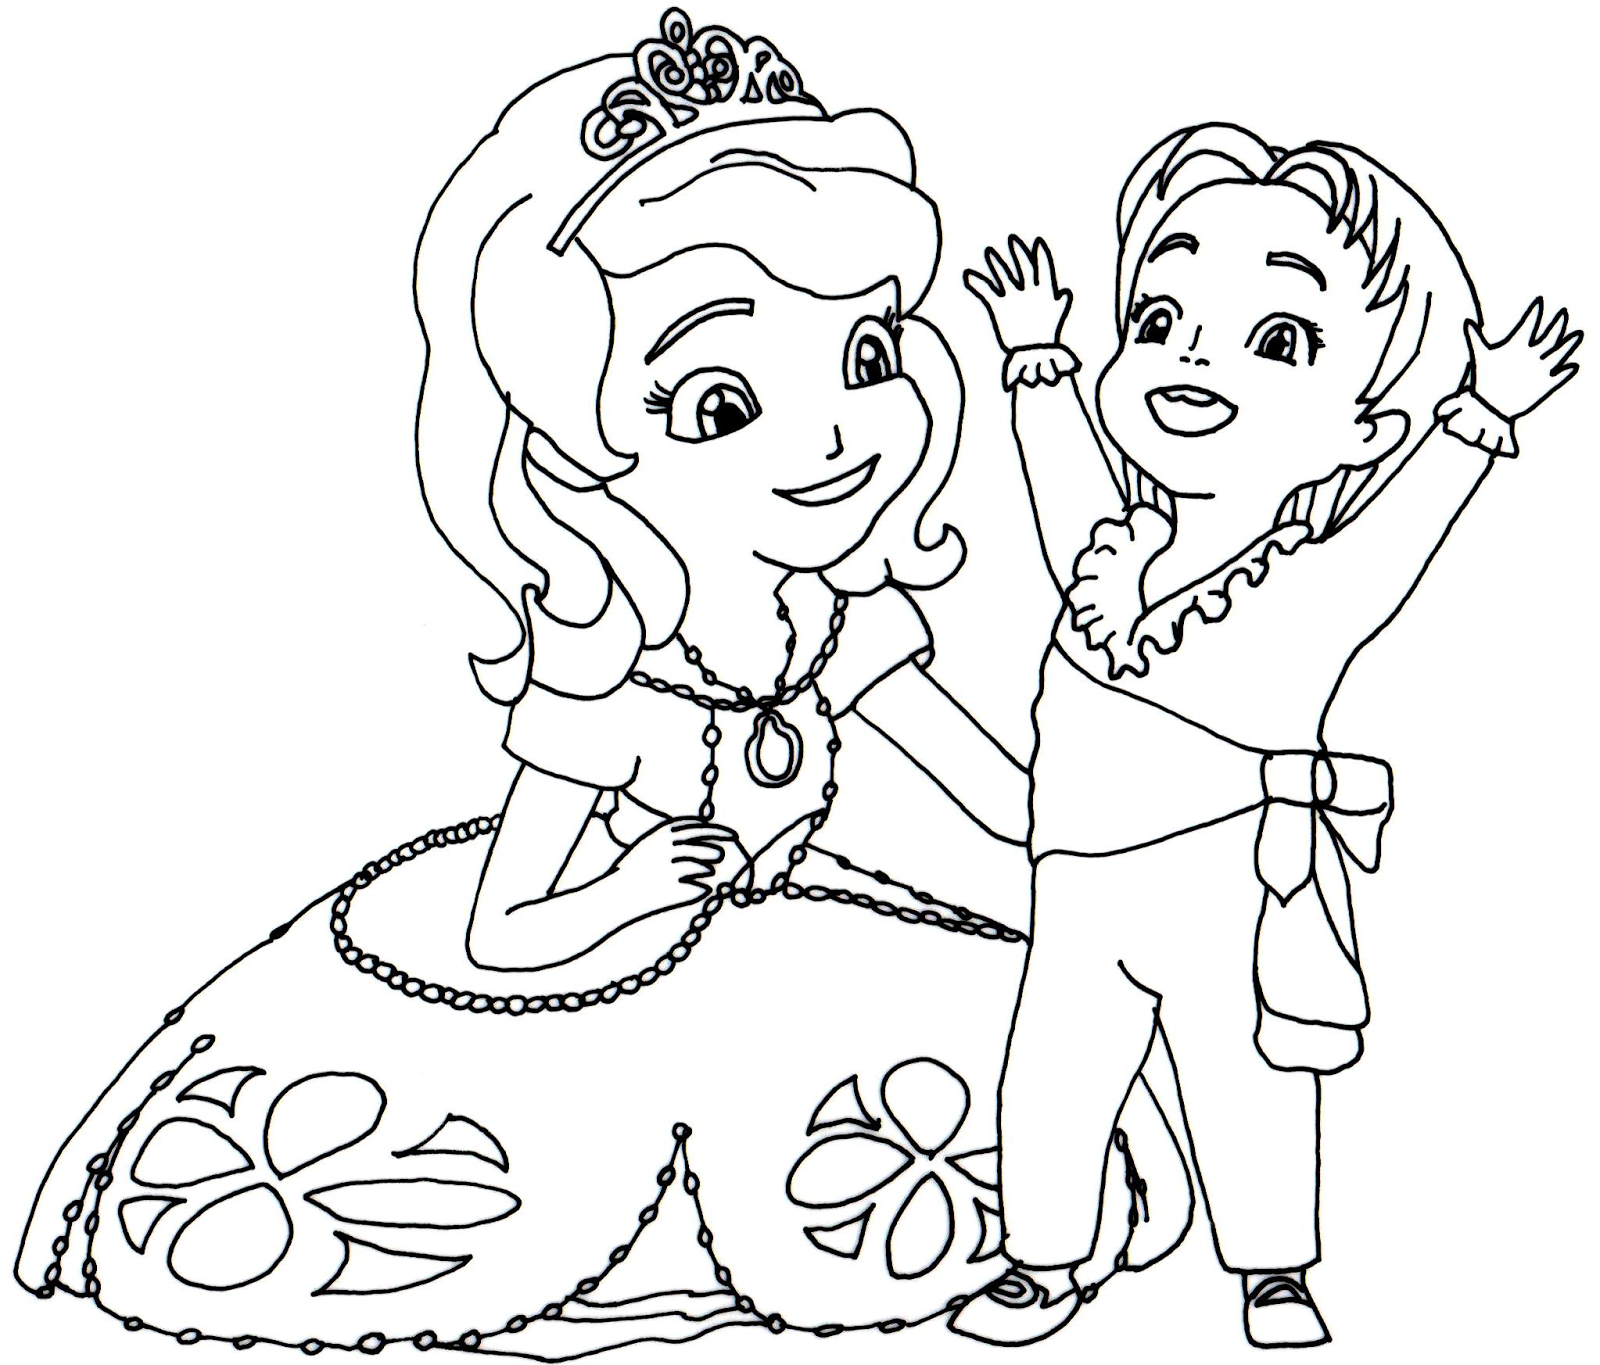 Sofia The First Coloring Pages April